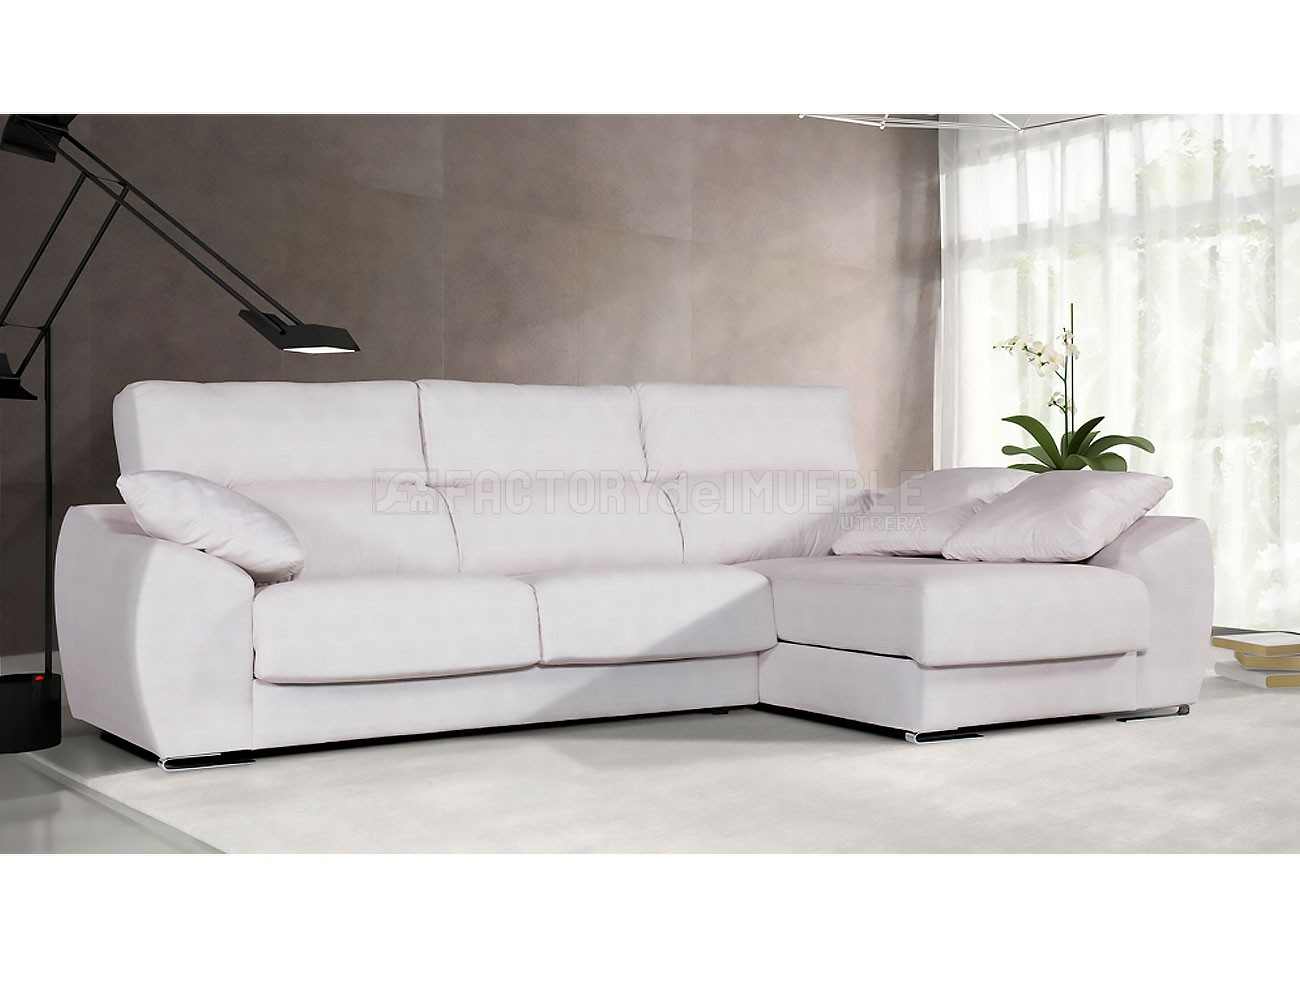 Sofa chaiselongue tosca3